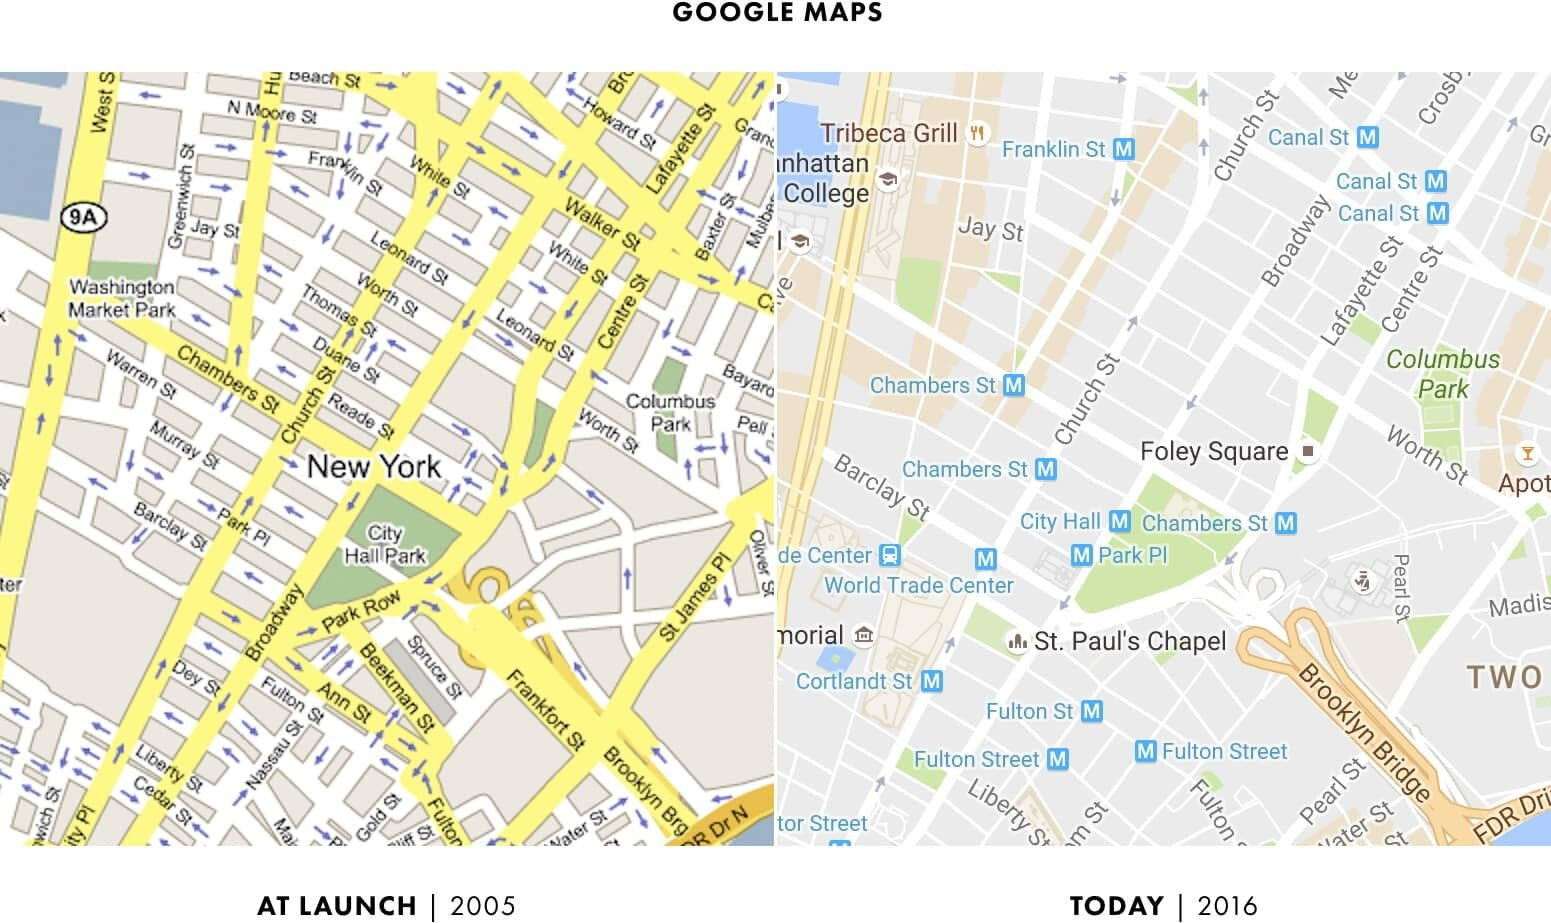 9 Google Maps - At Launch vs Today.jpg